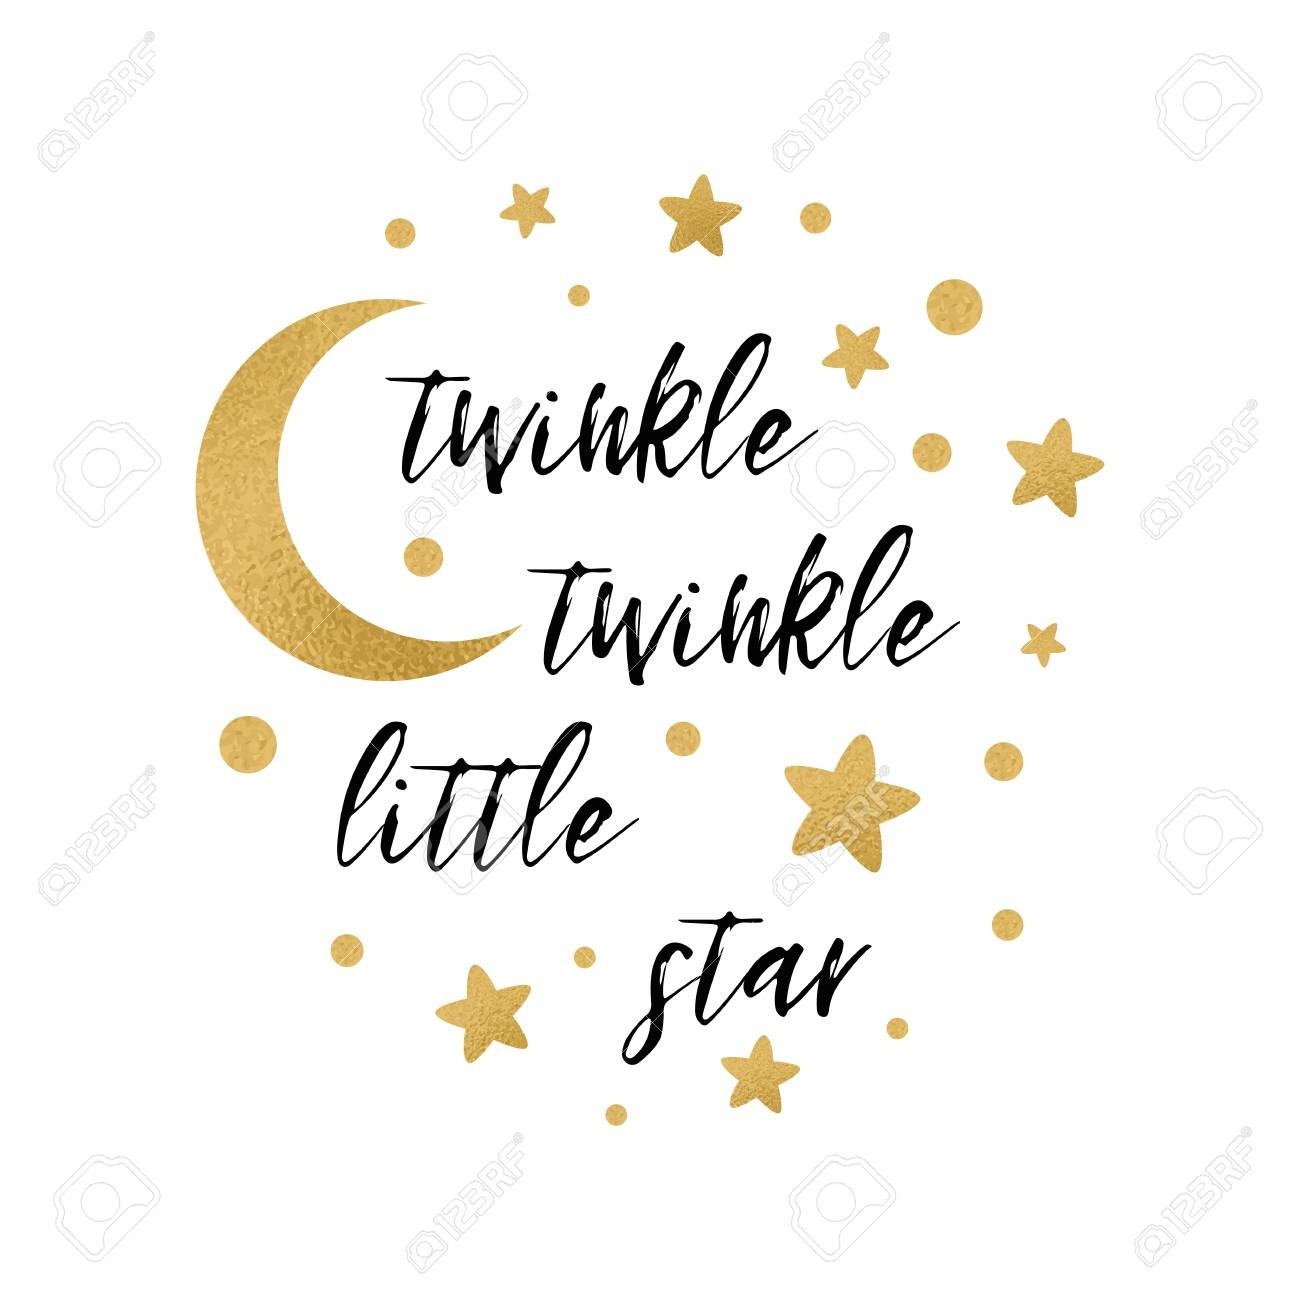 Twinkle Twinkle Little Star Text With Cute Gold Star And Moon - Twinkle Twinkle Little Star Baby Shower Free Printables